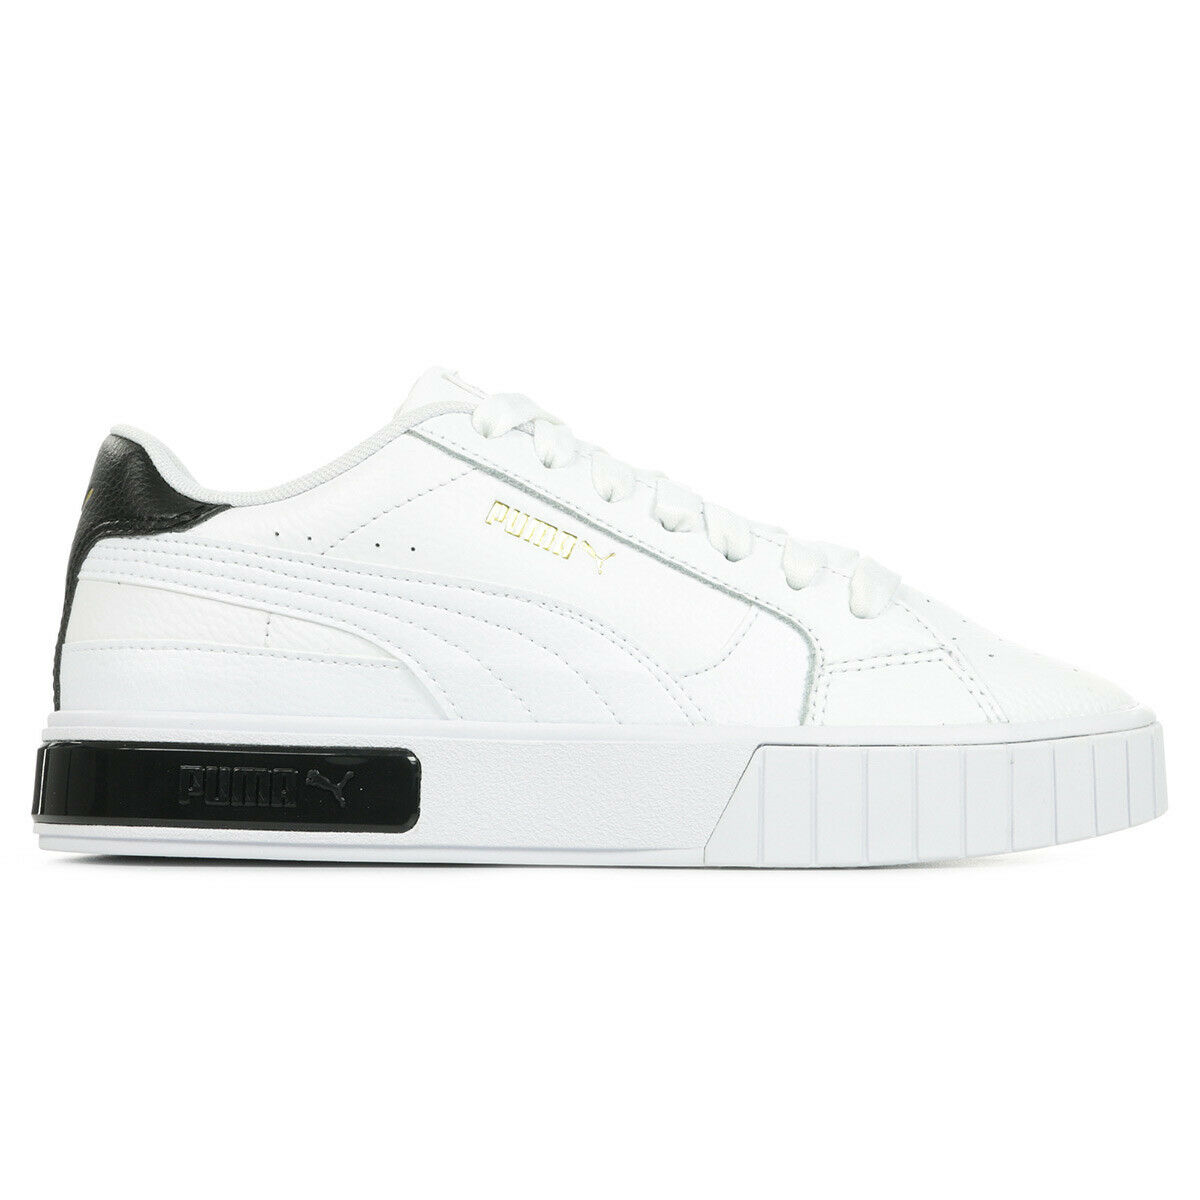 Chaussures Baskets Puma femme Cali Star Wn's taille Blanc Blanche Cuir Lacets